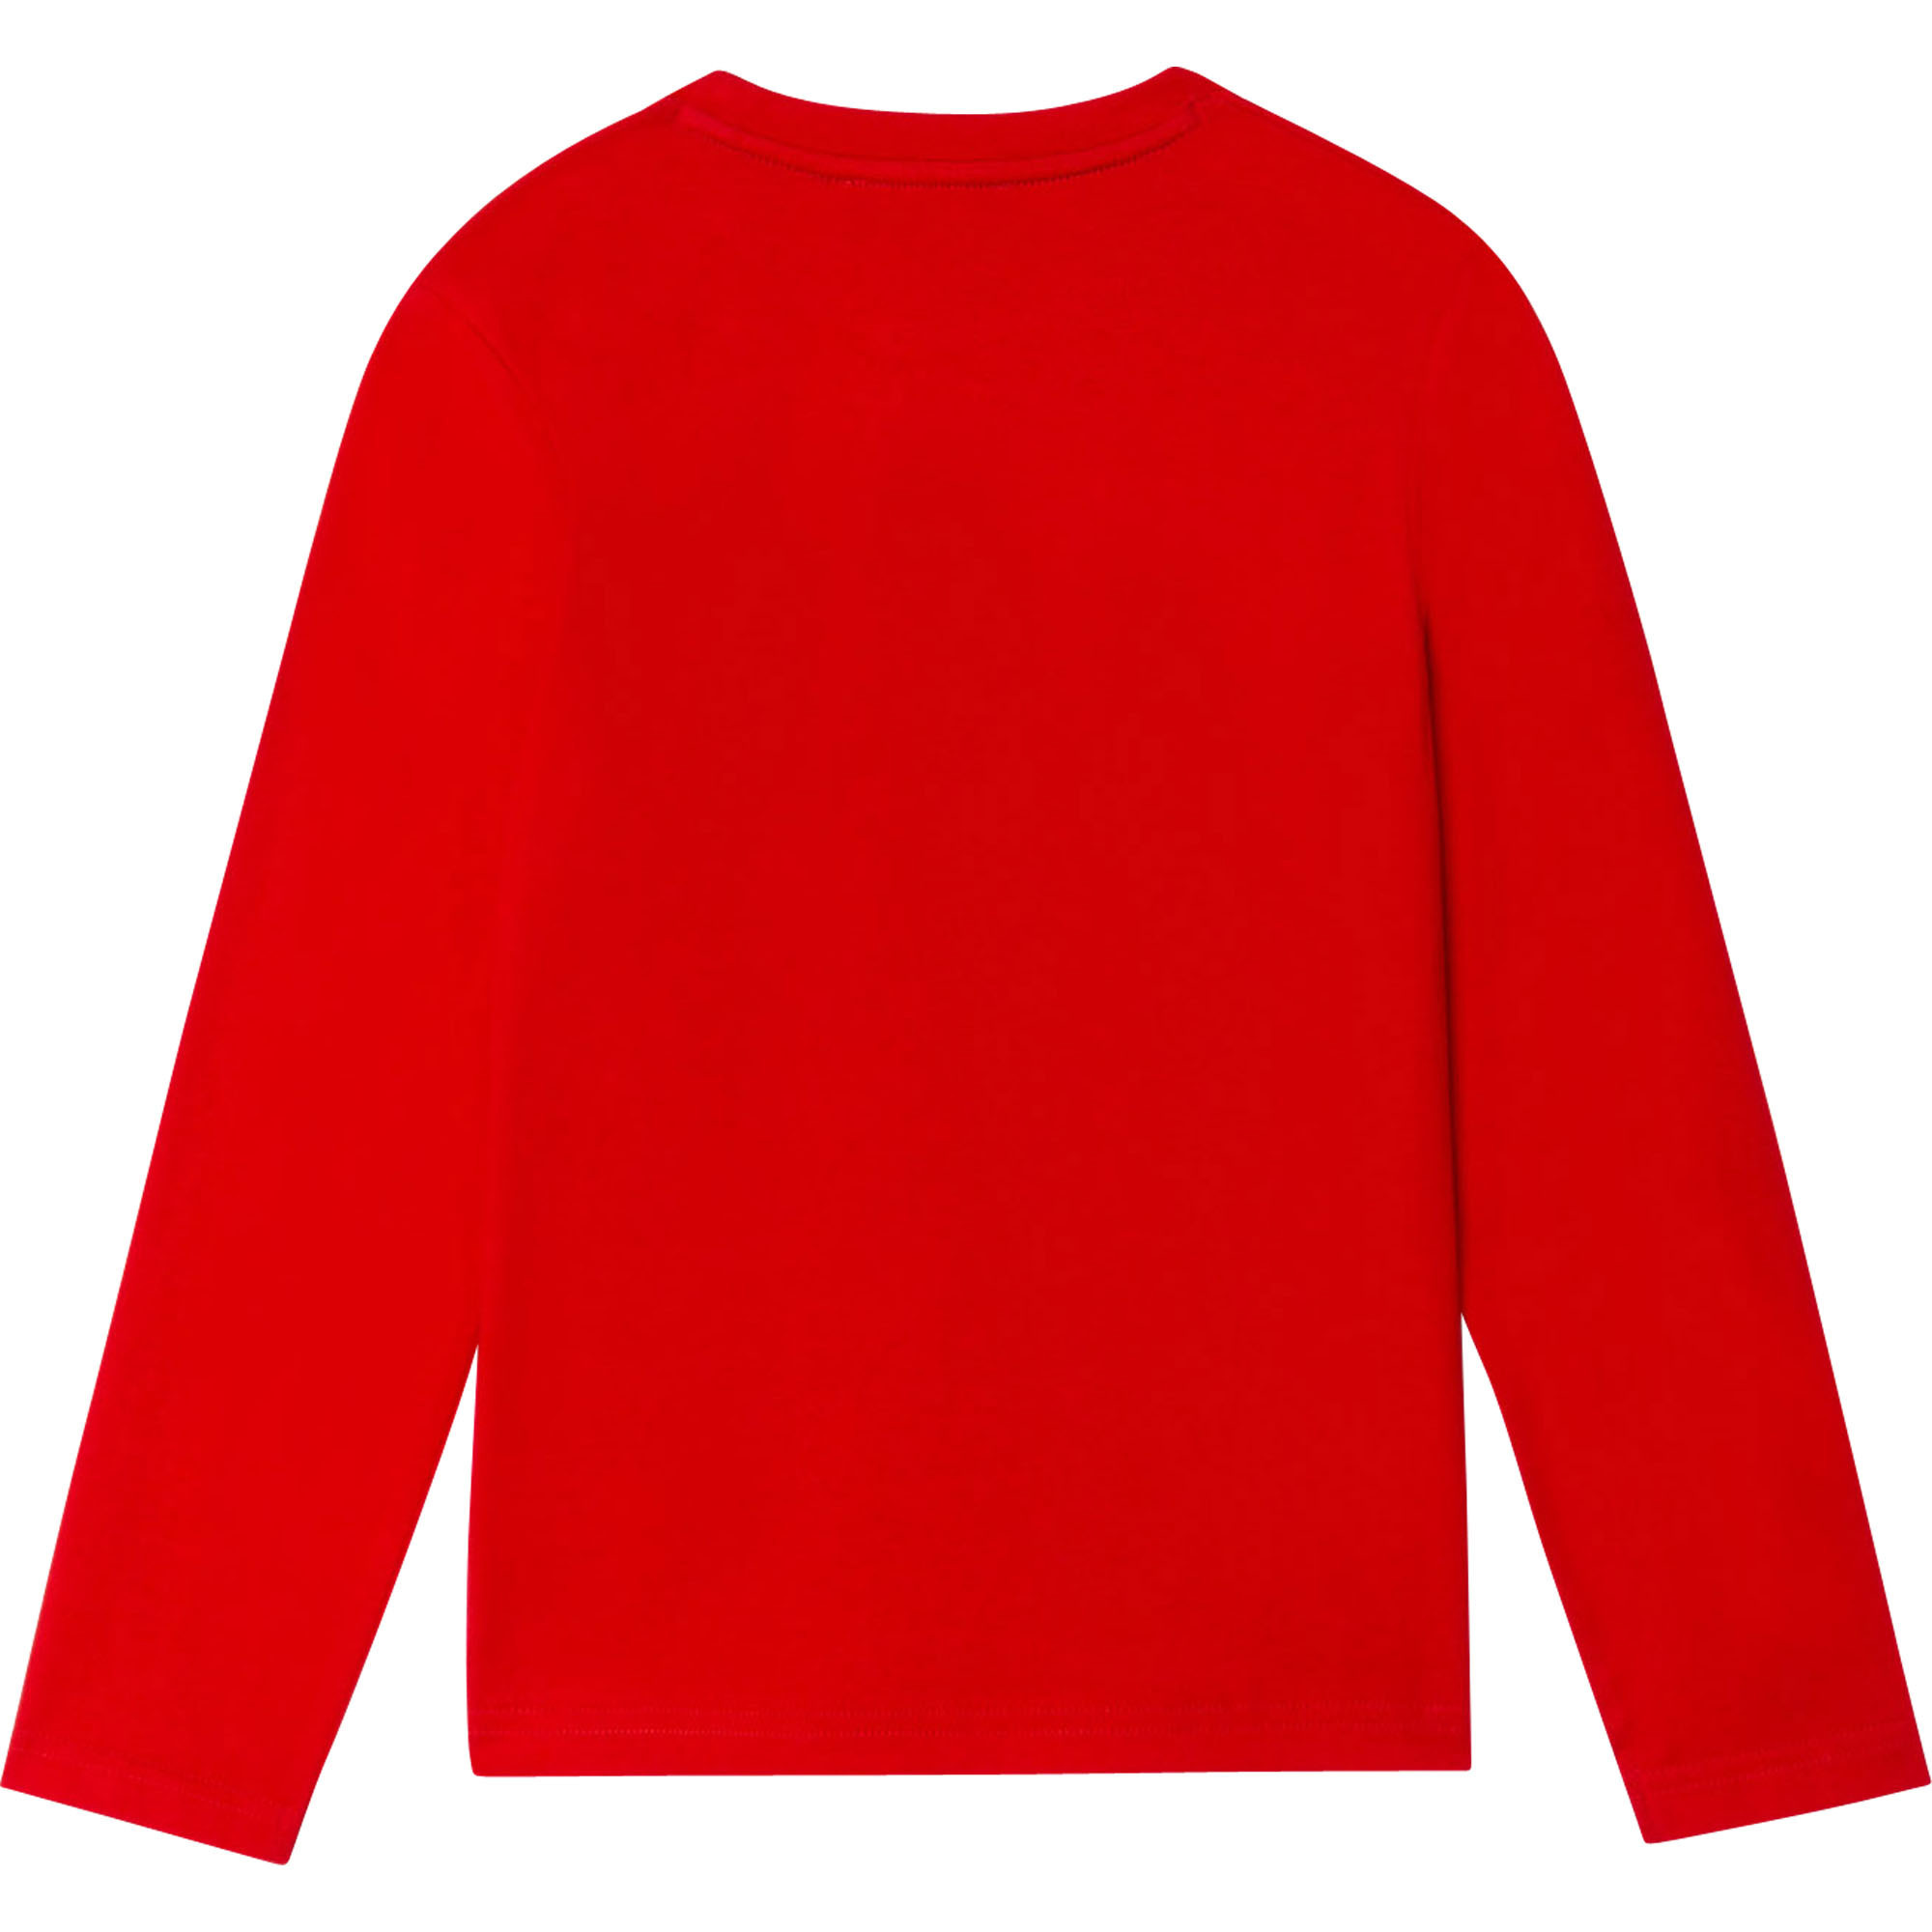 DKNY Red Long Sleeve Top